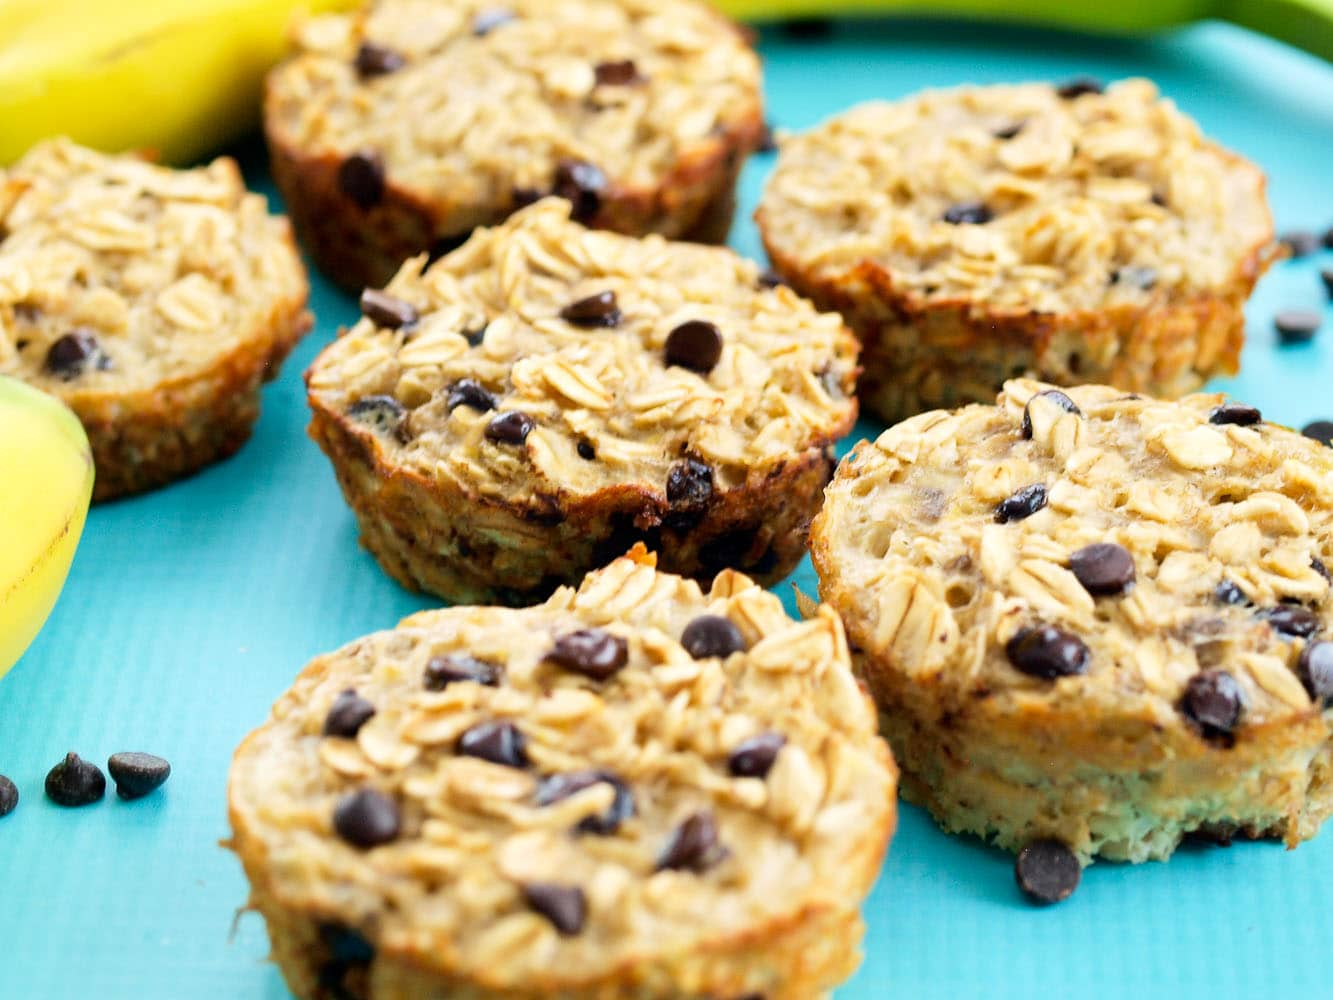 Healthy Chocolate Chip Banana Oat Muffins